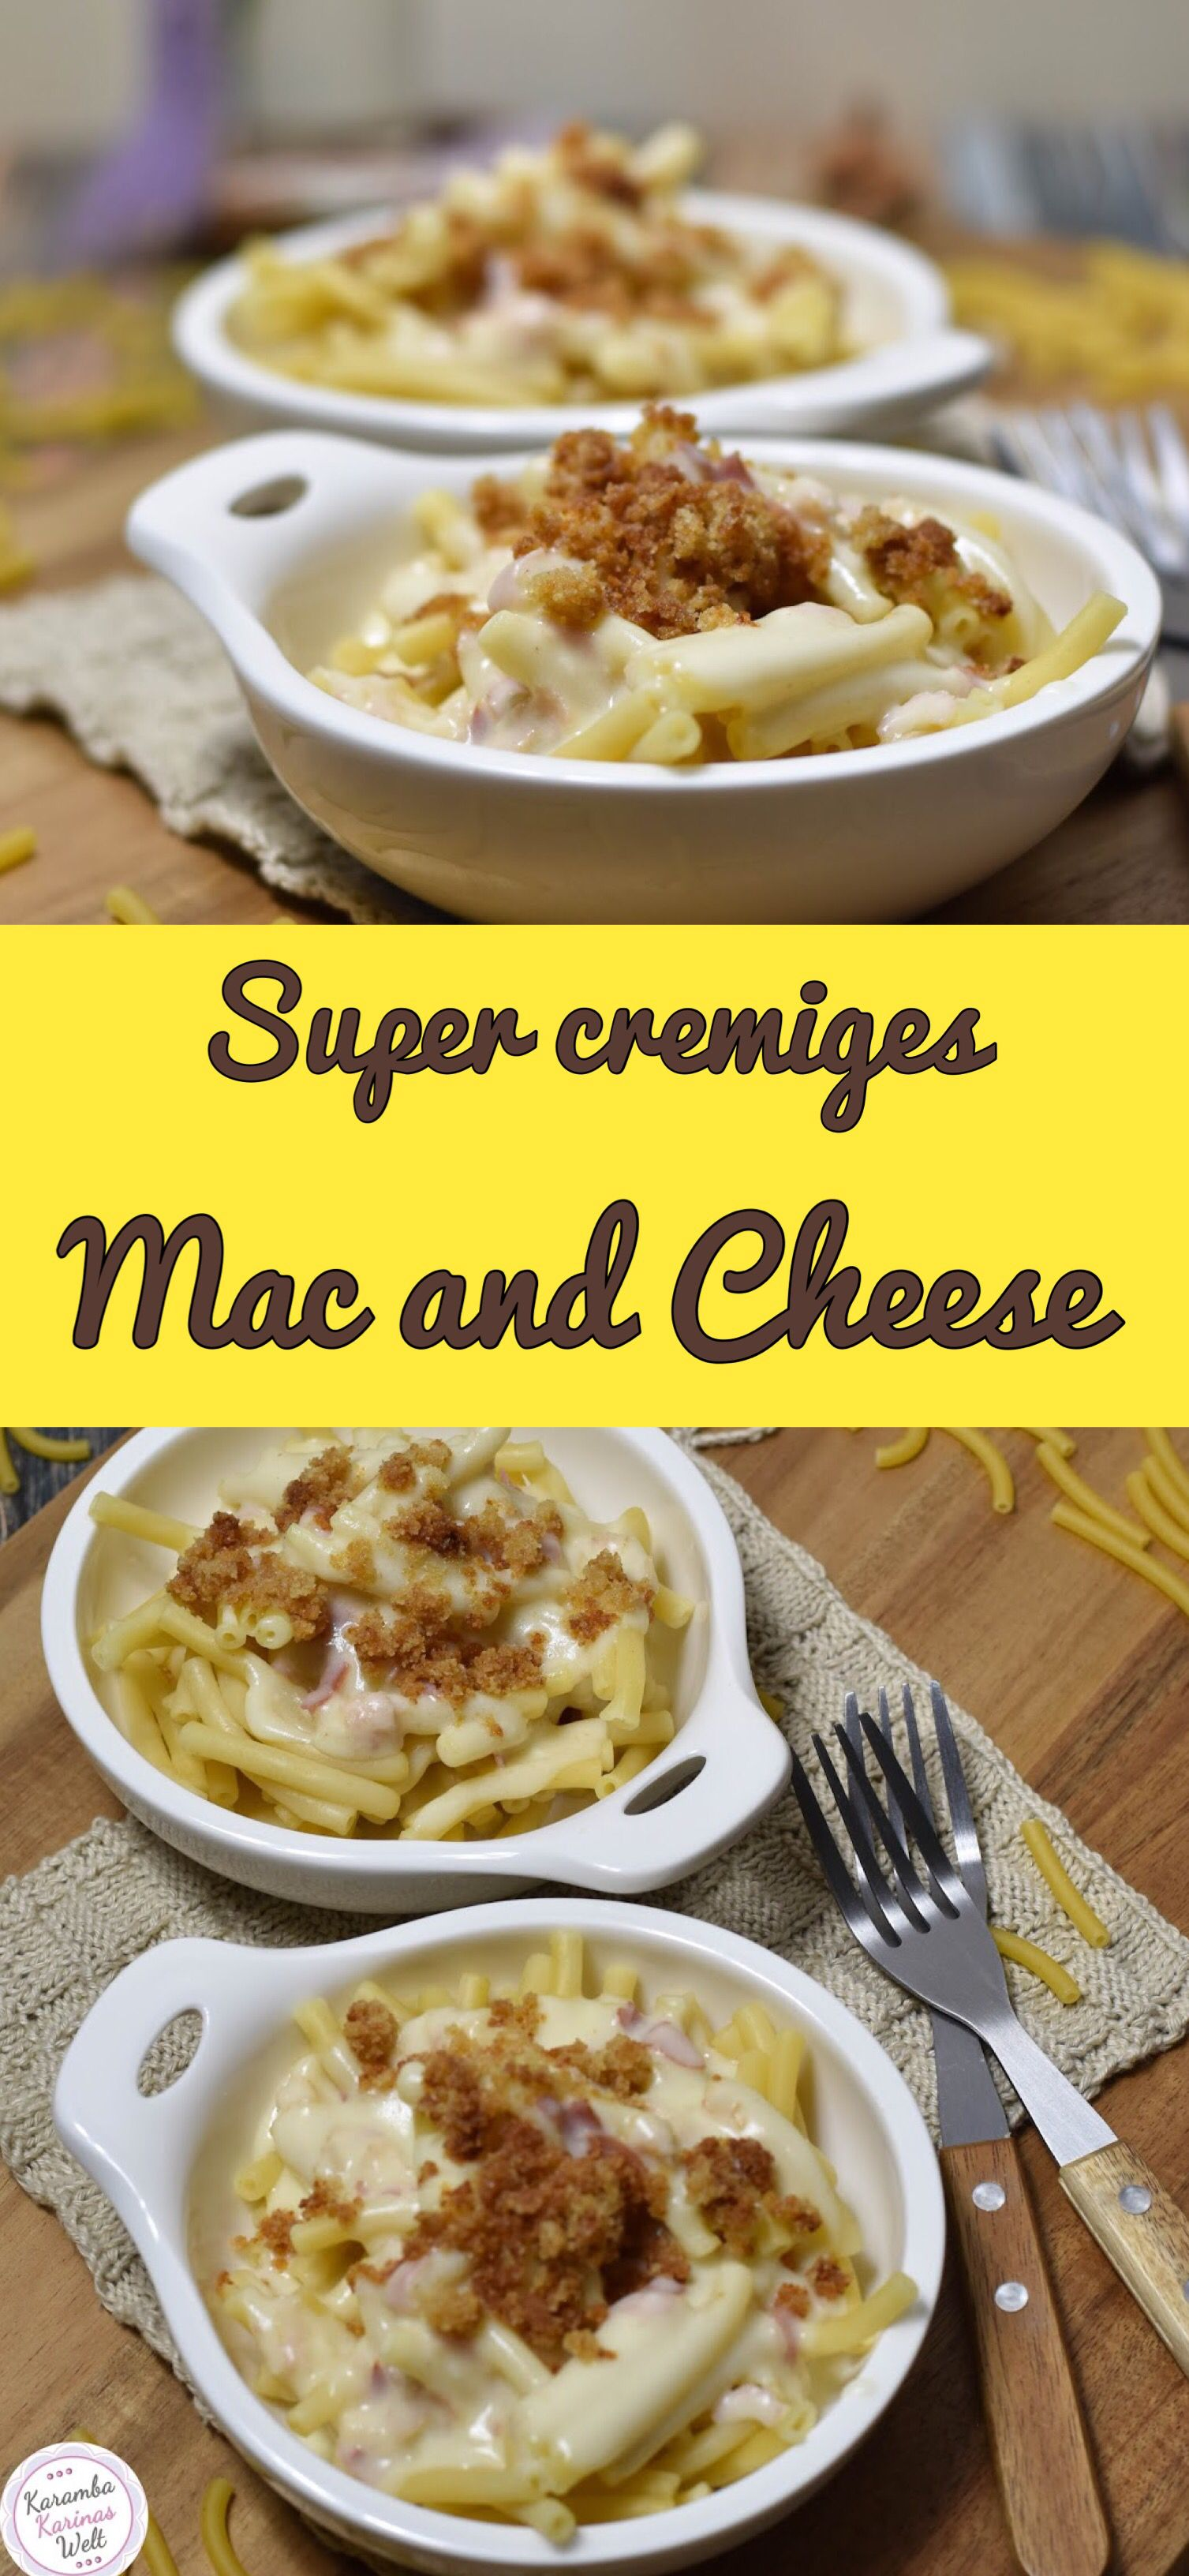 Photo of Super cremige Mac and Cheese